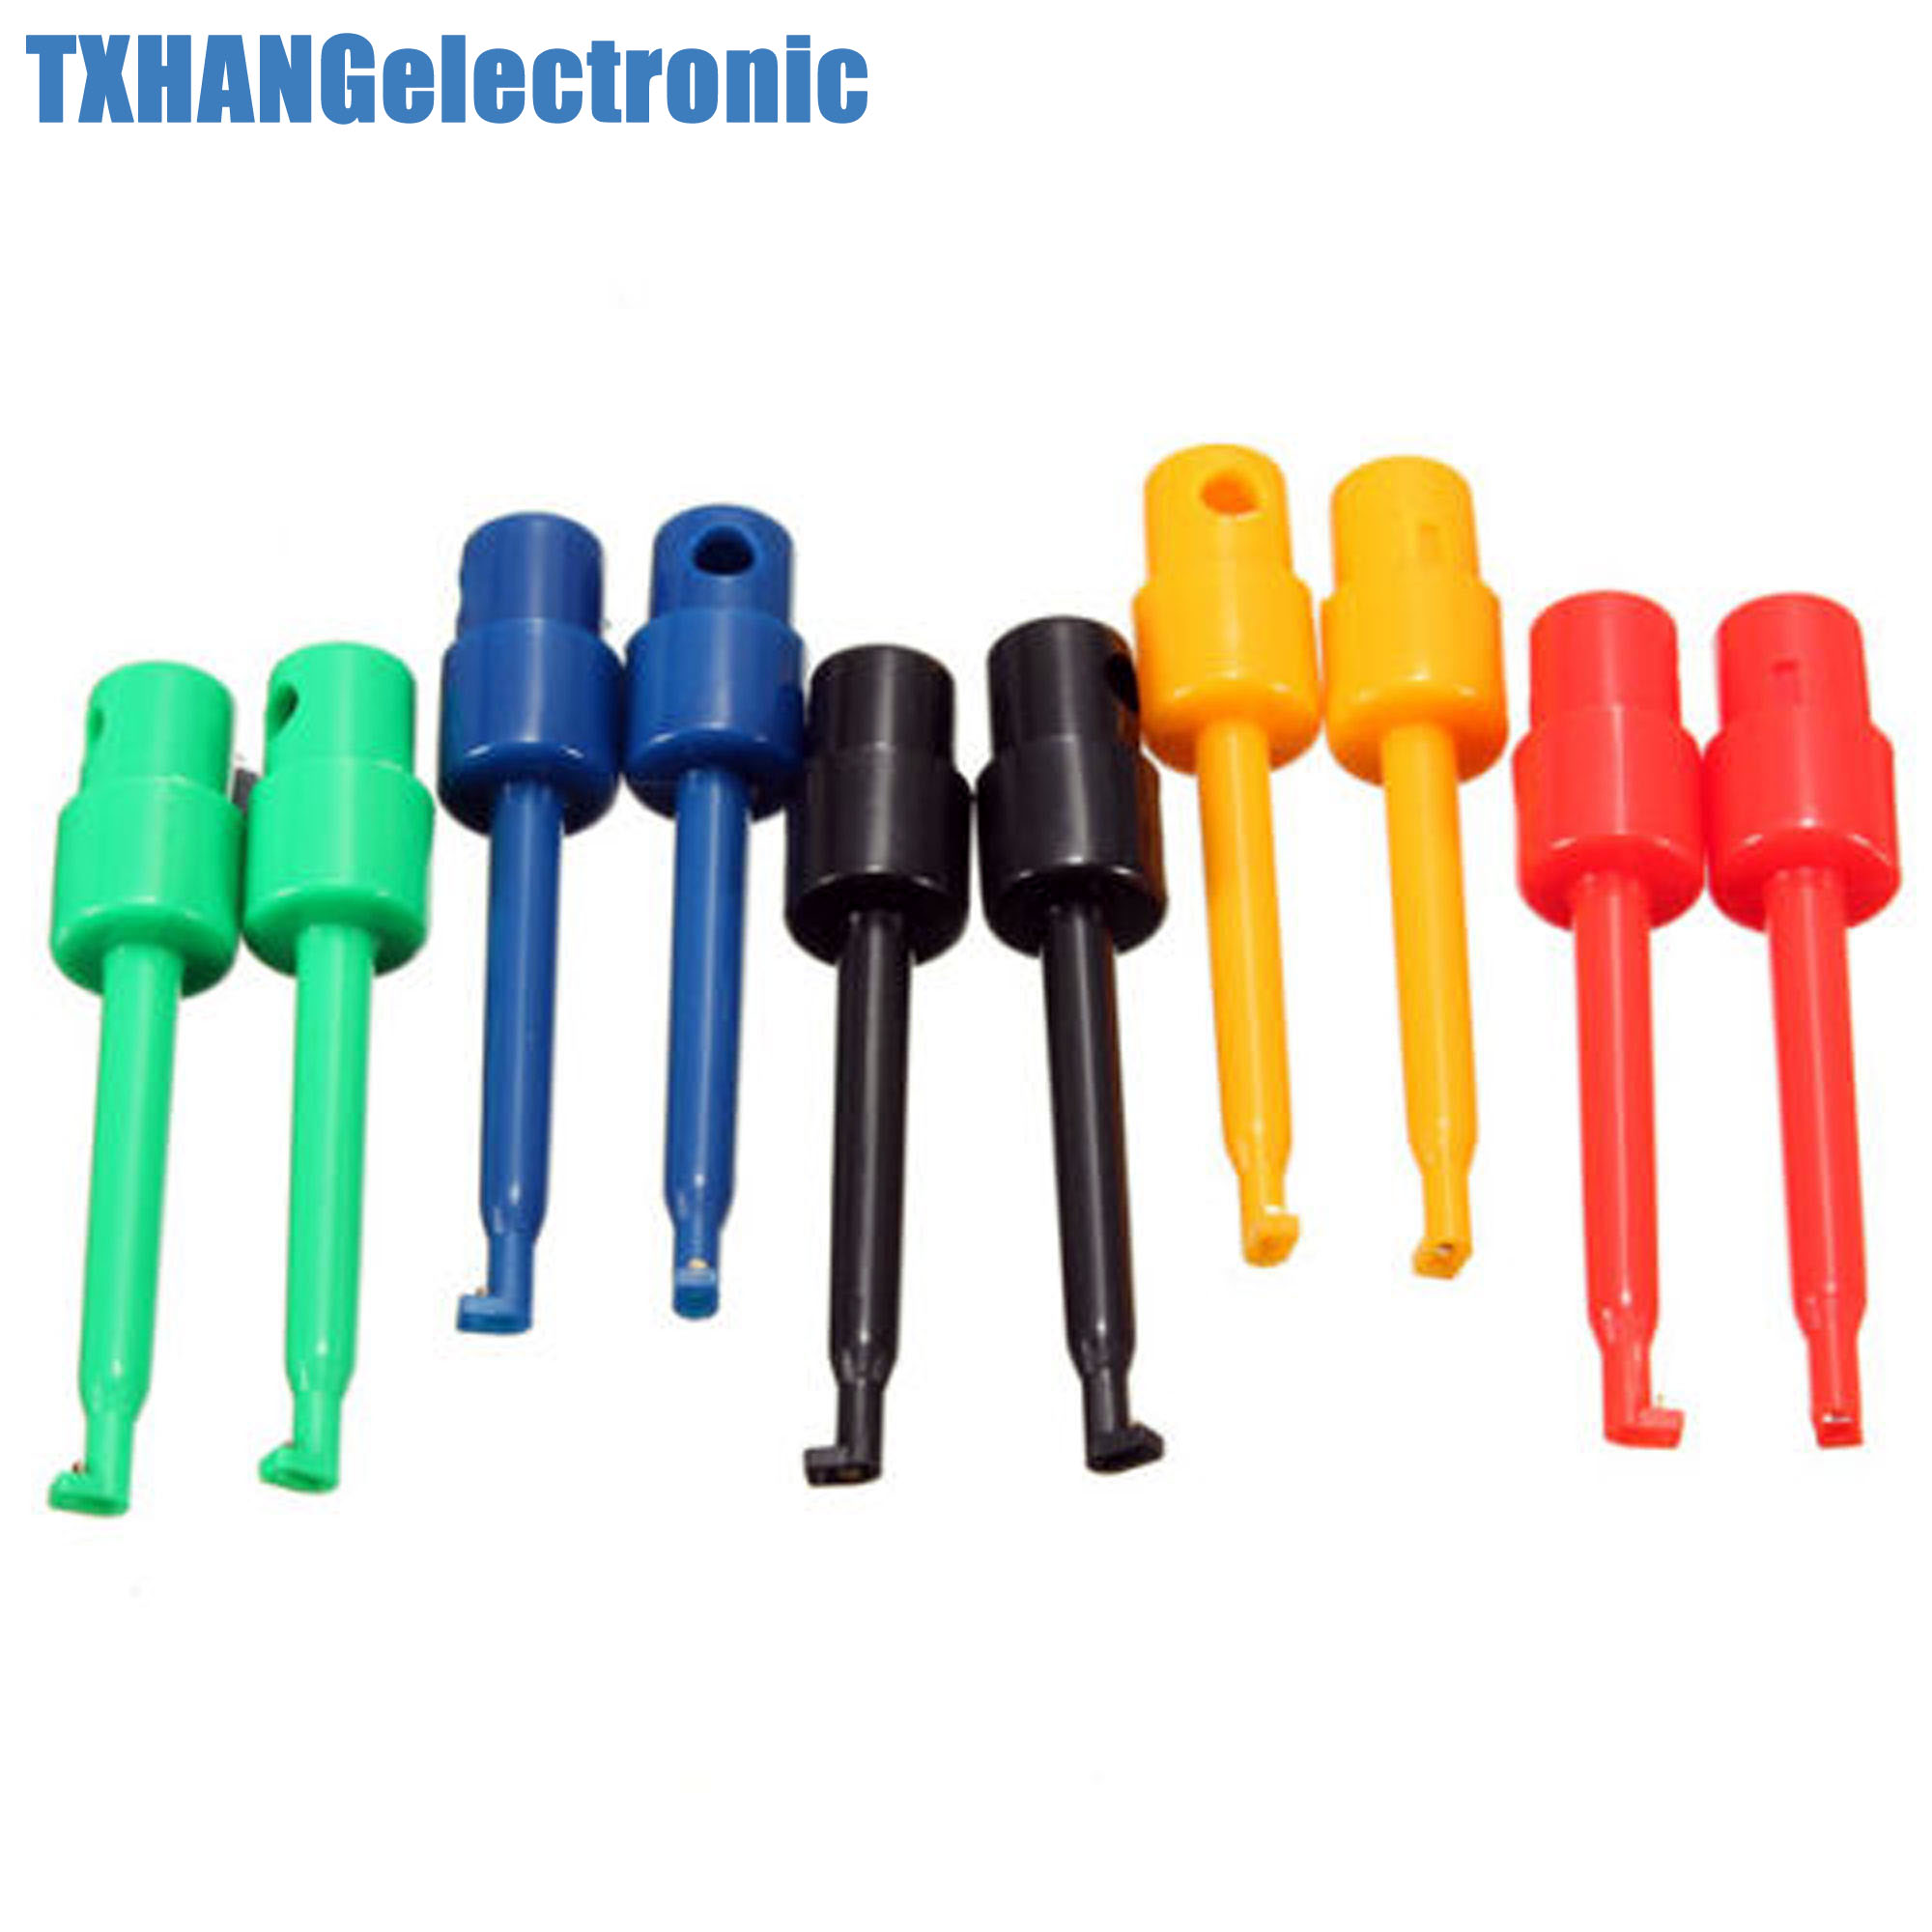 2PCS Large Size Round Single Hook Clip Test Probe for